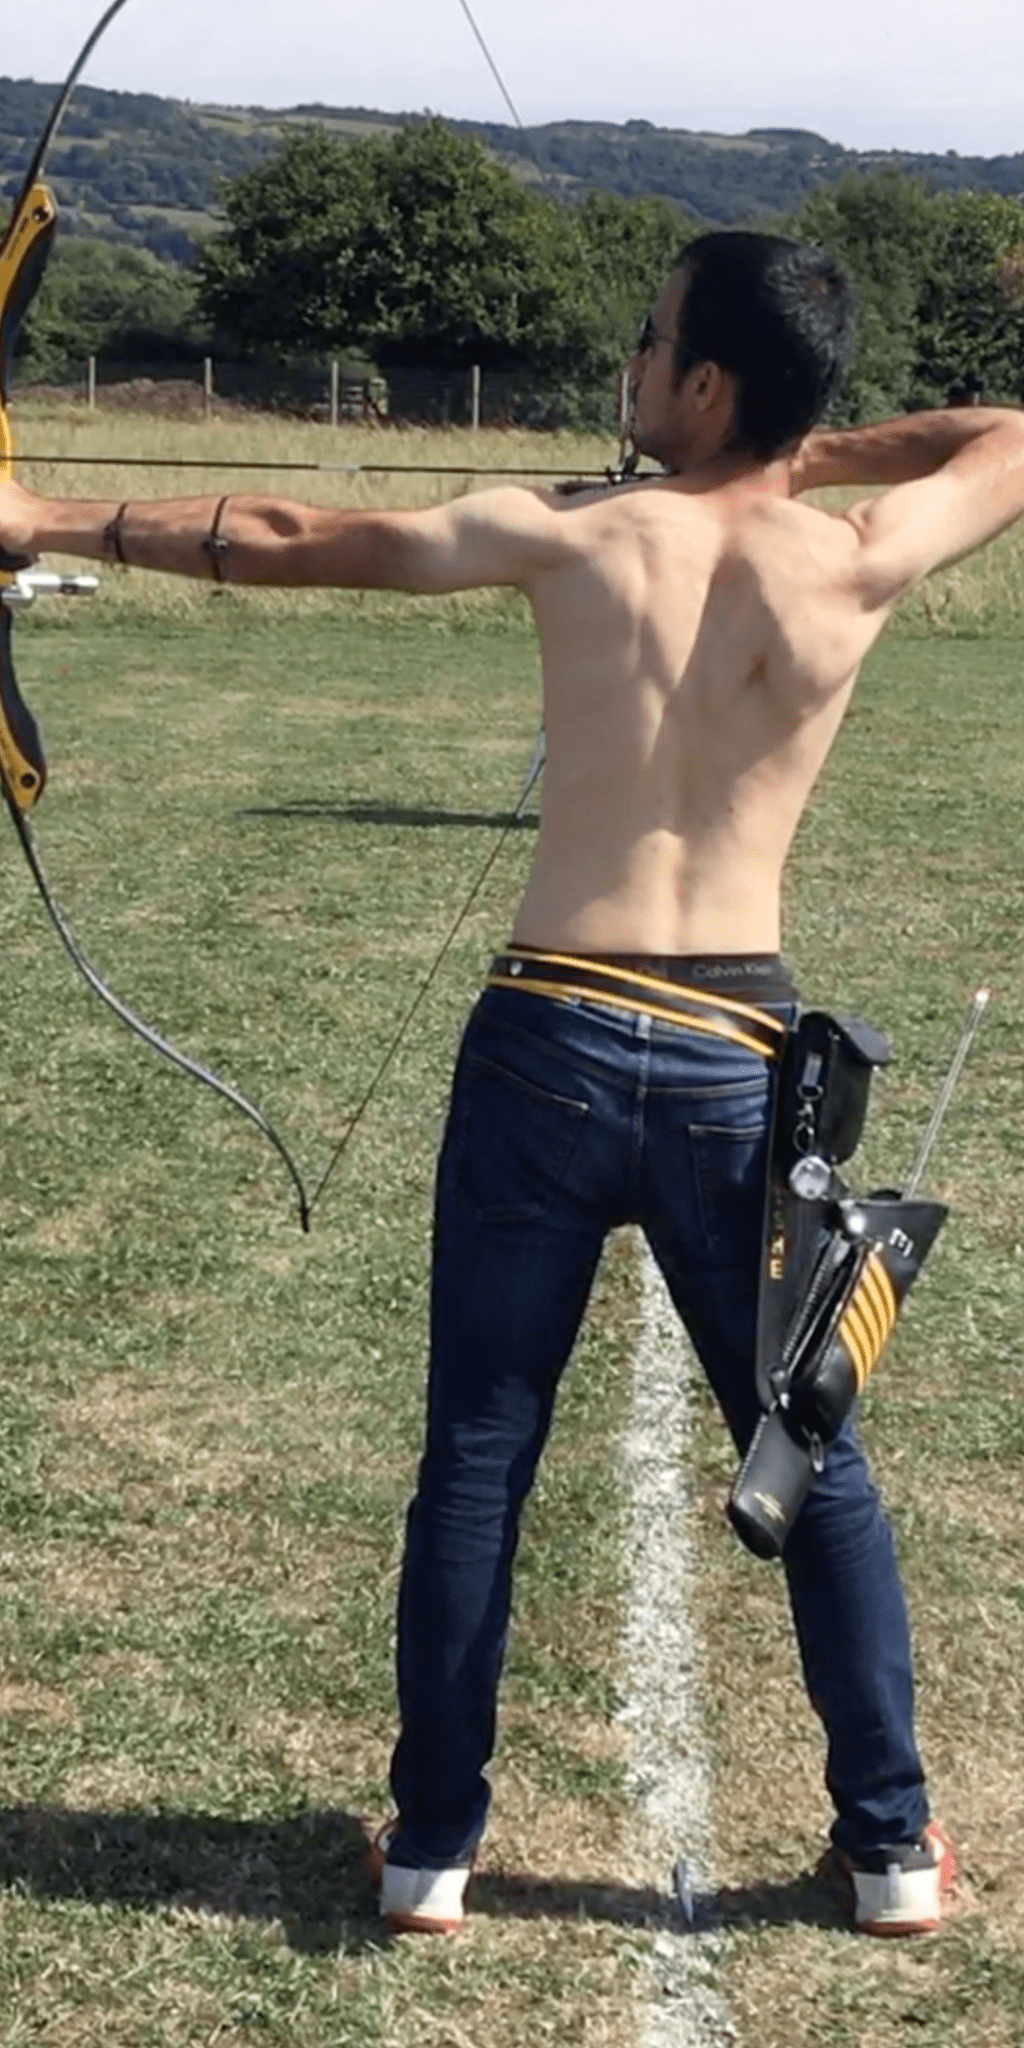 recurve archer showing bad posture and spine position